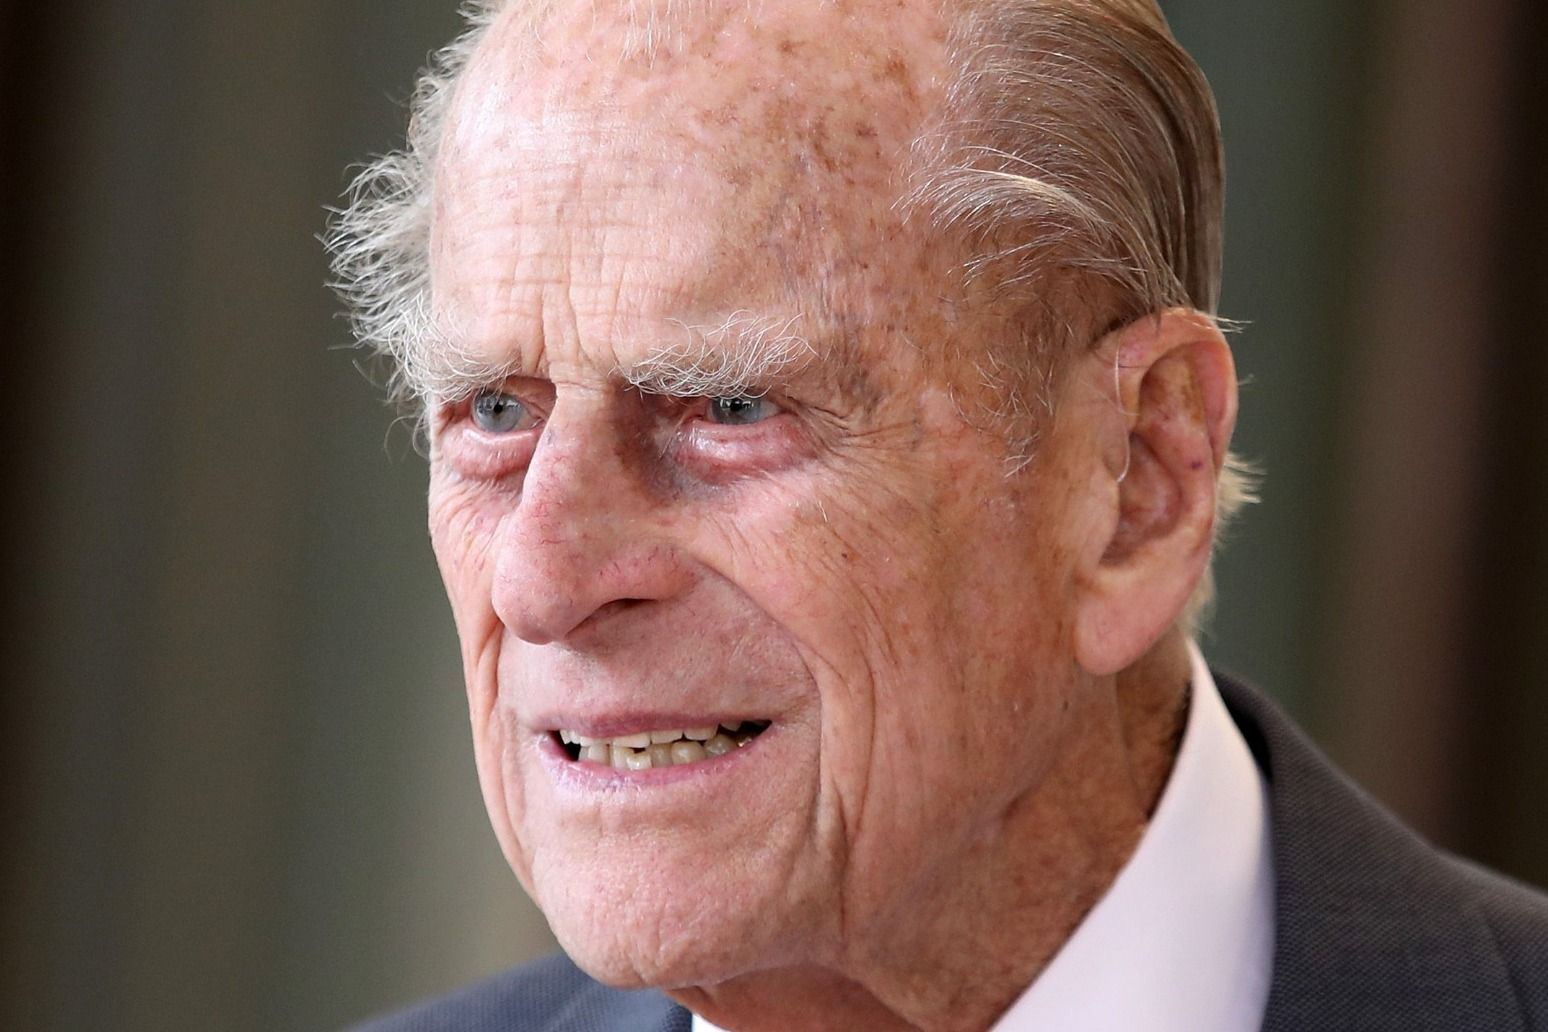 The Duke of Edinburgh is being treated for an infection